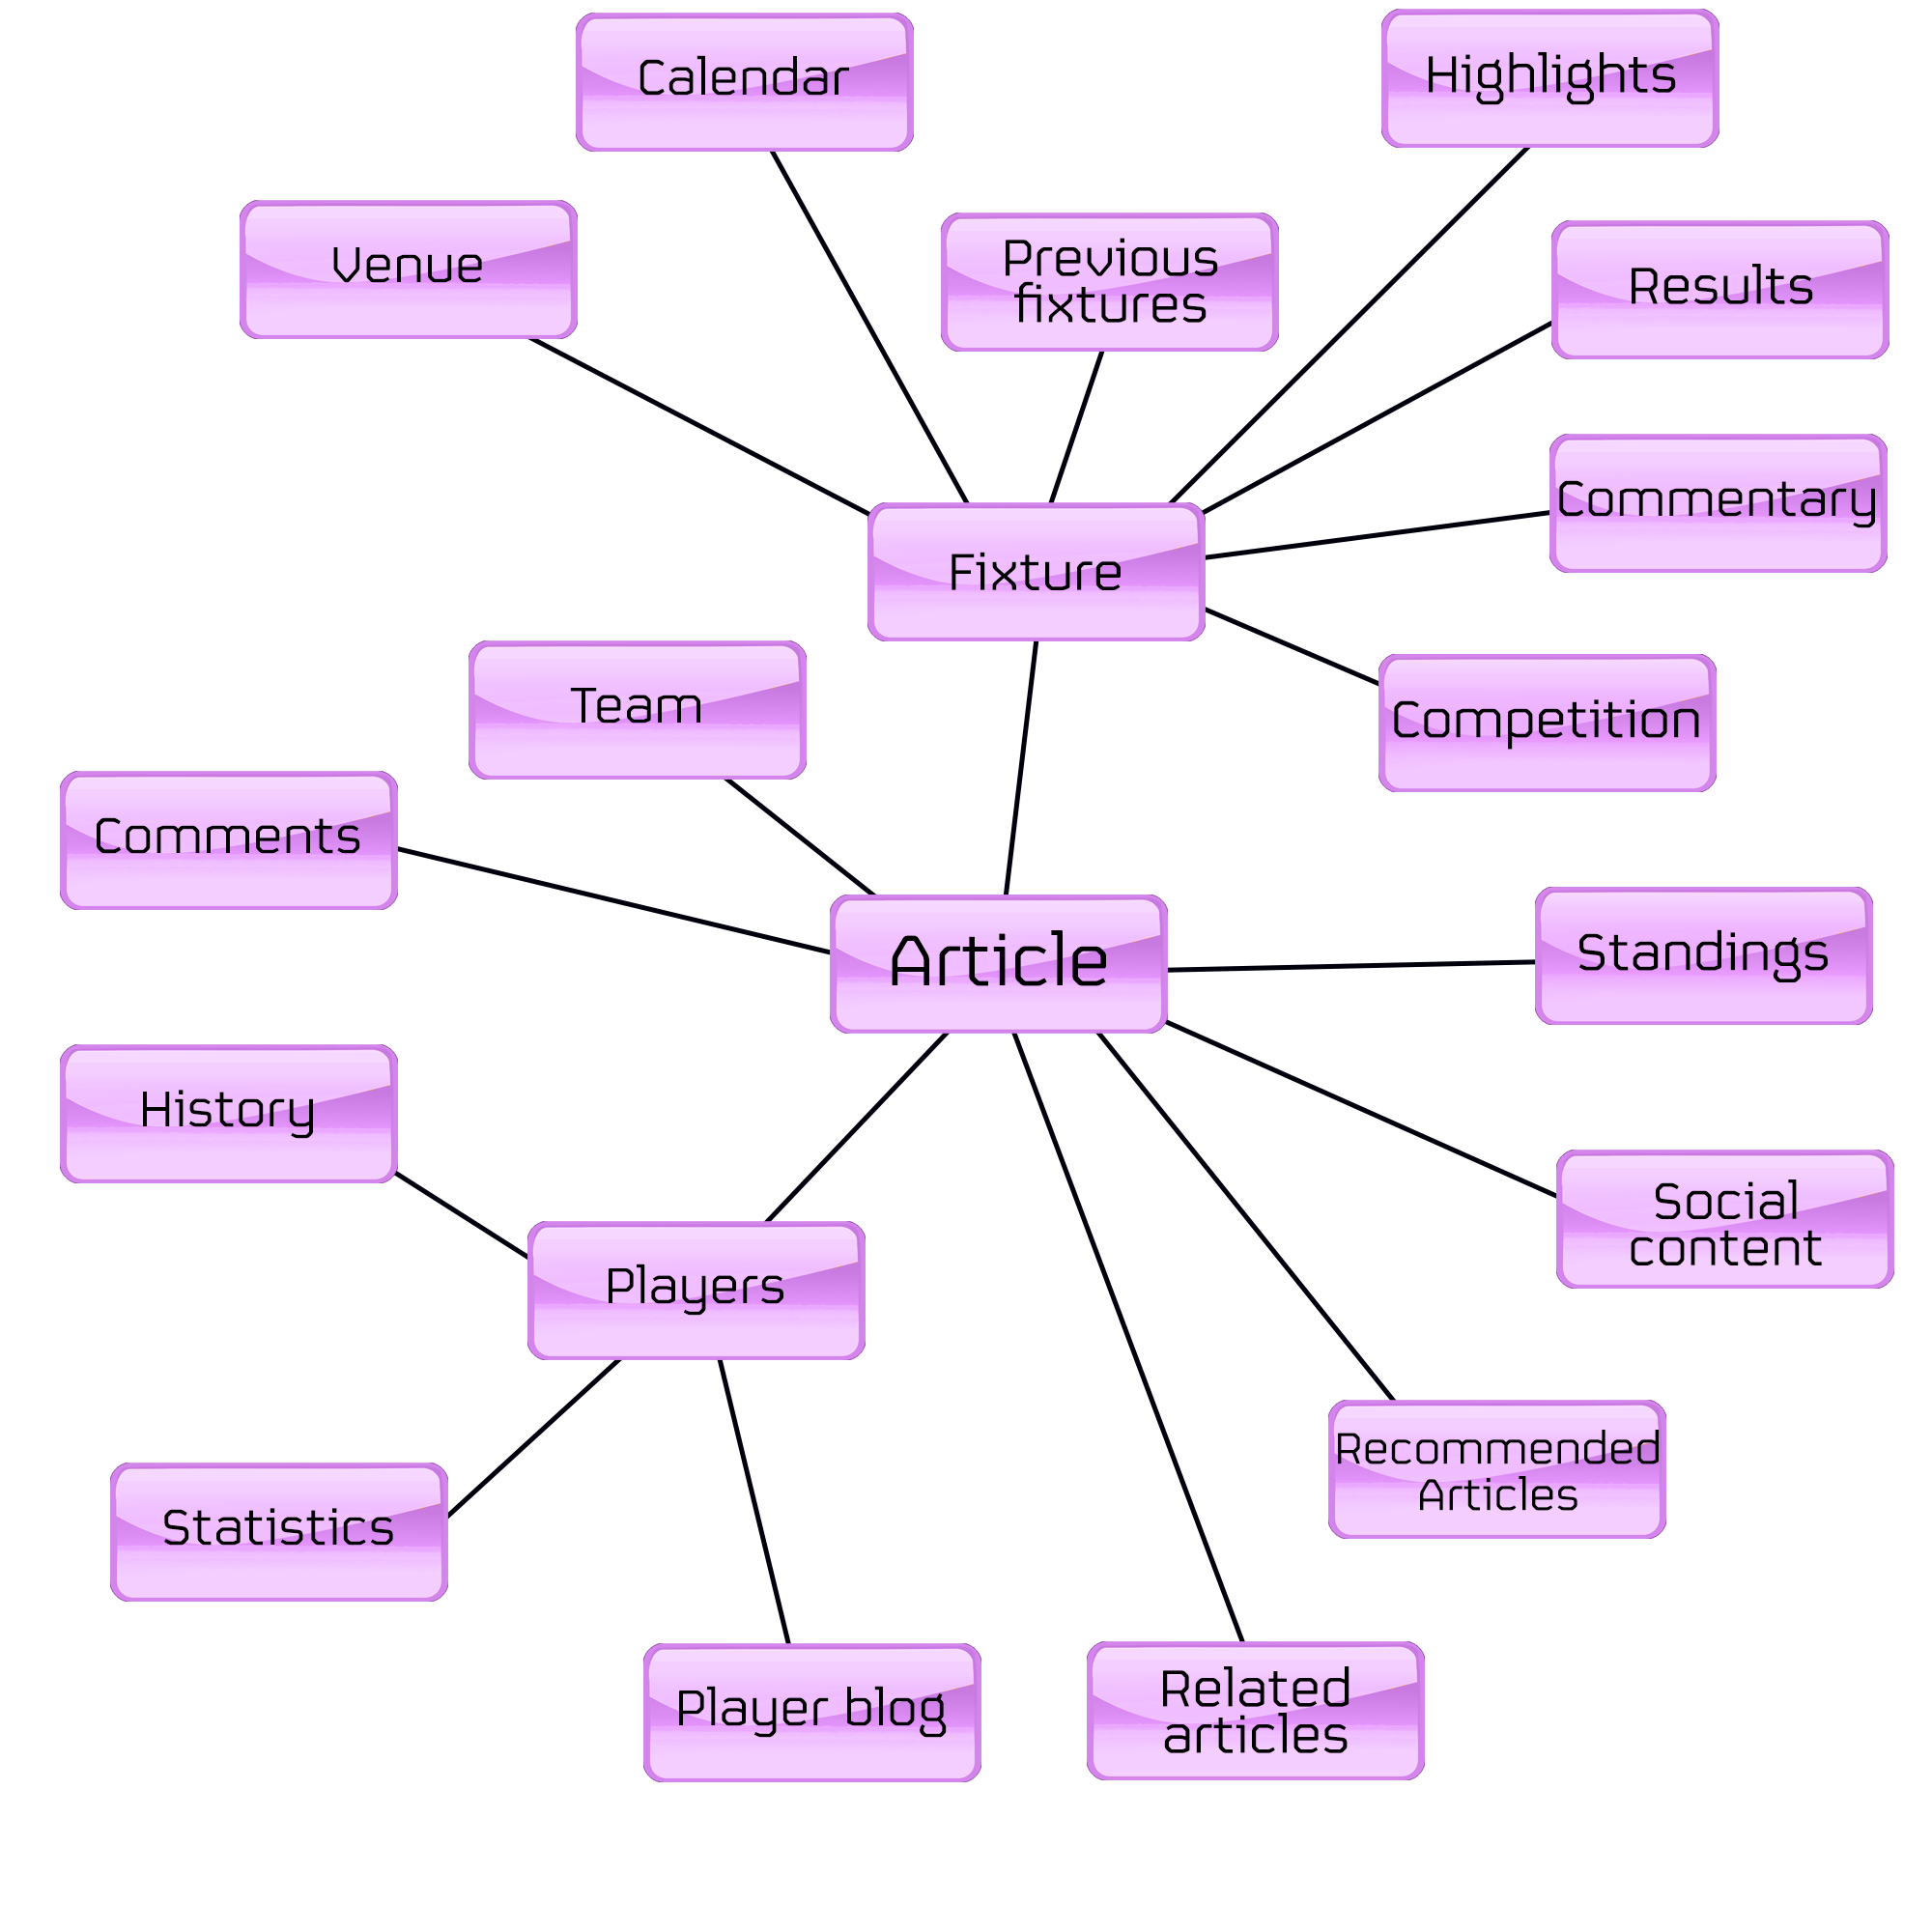 Spider diagram with 'article' at the centre connected to 'team', 'fixture' and so on